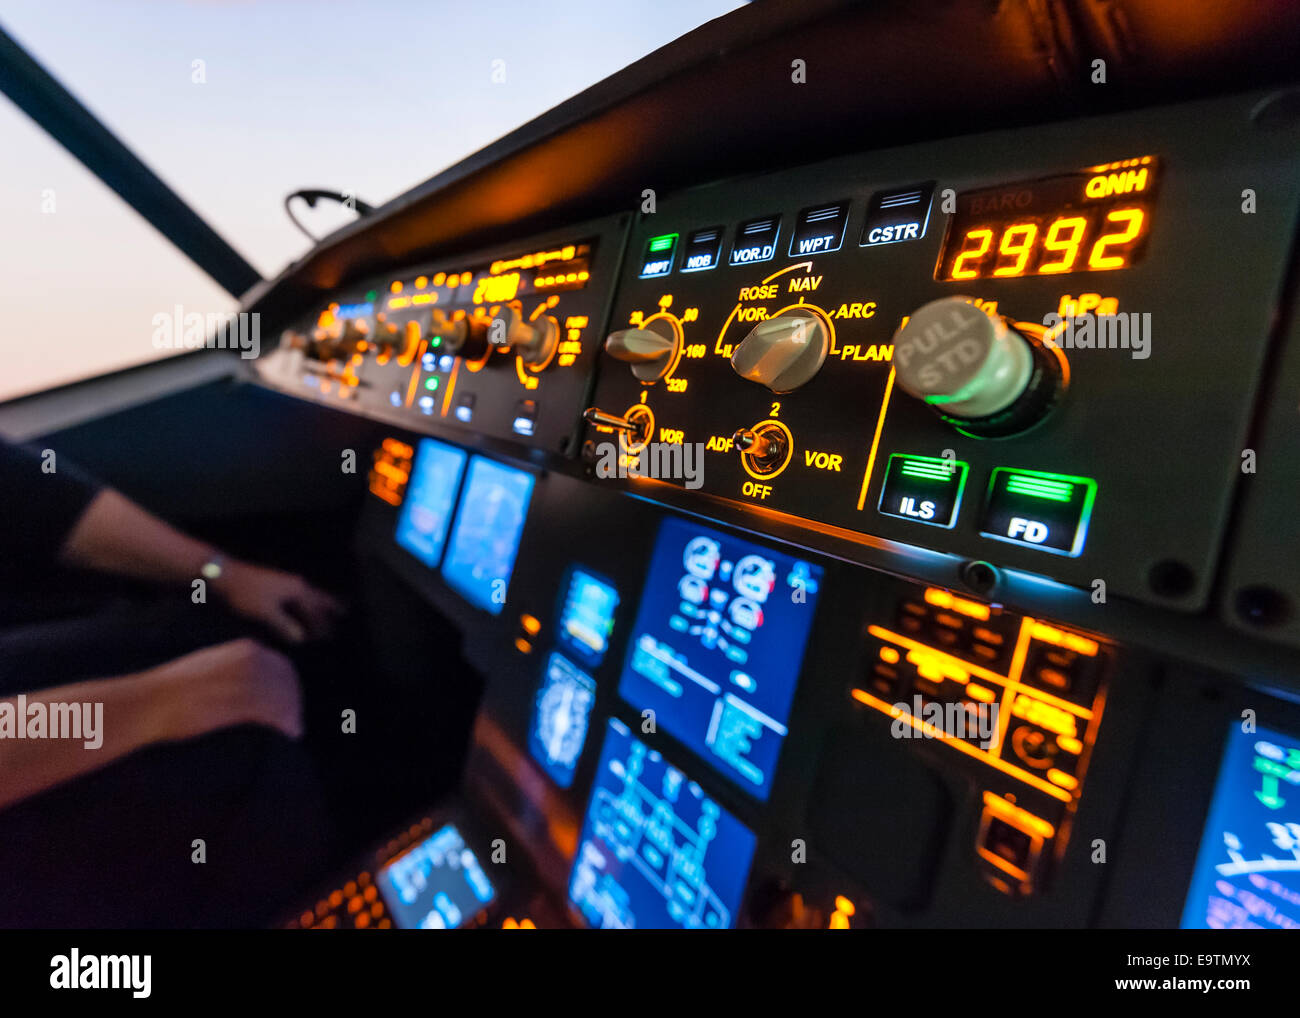 Cockpit of an Airbus A320 flight simulator that is used for training of professional airline pilots (detail: autopilot - Stock Image